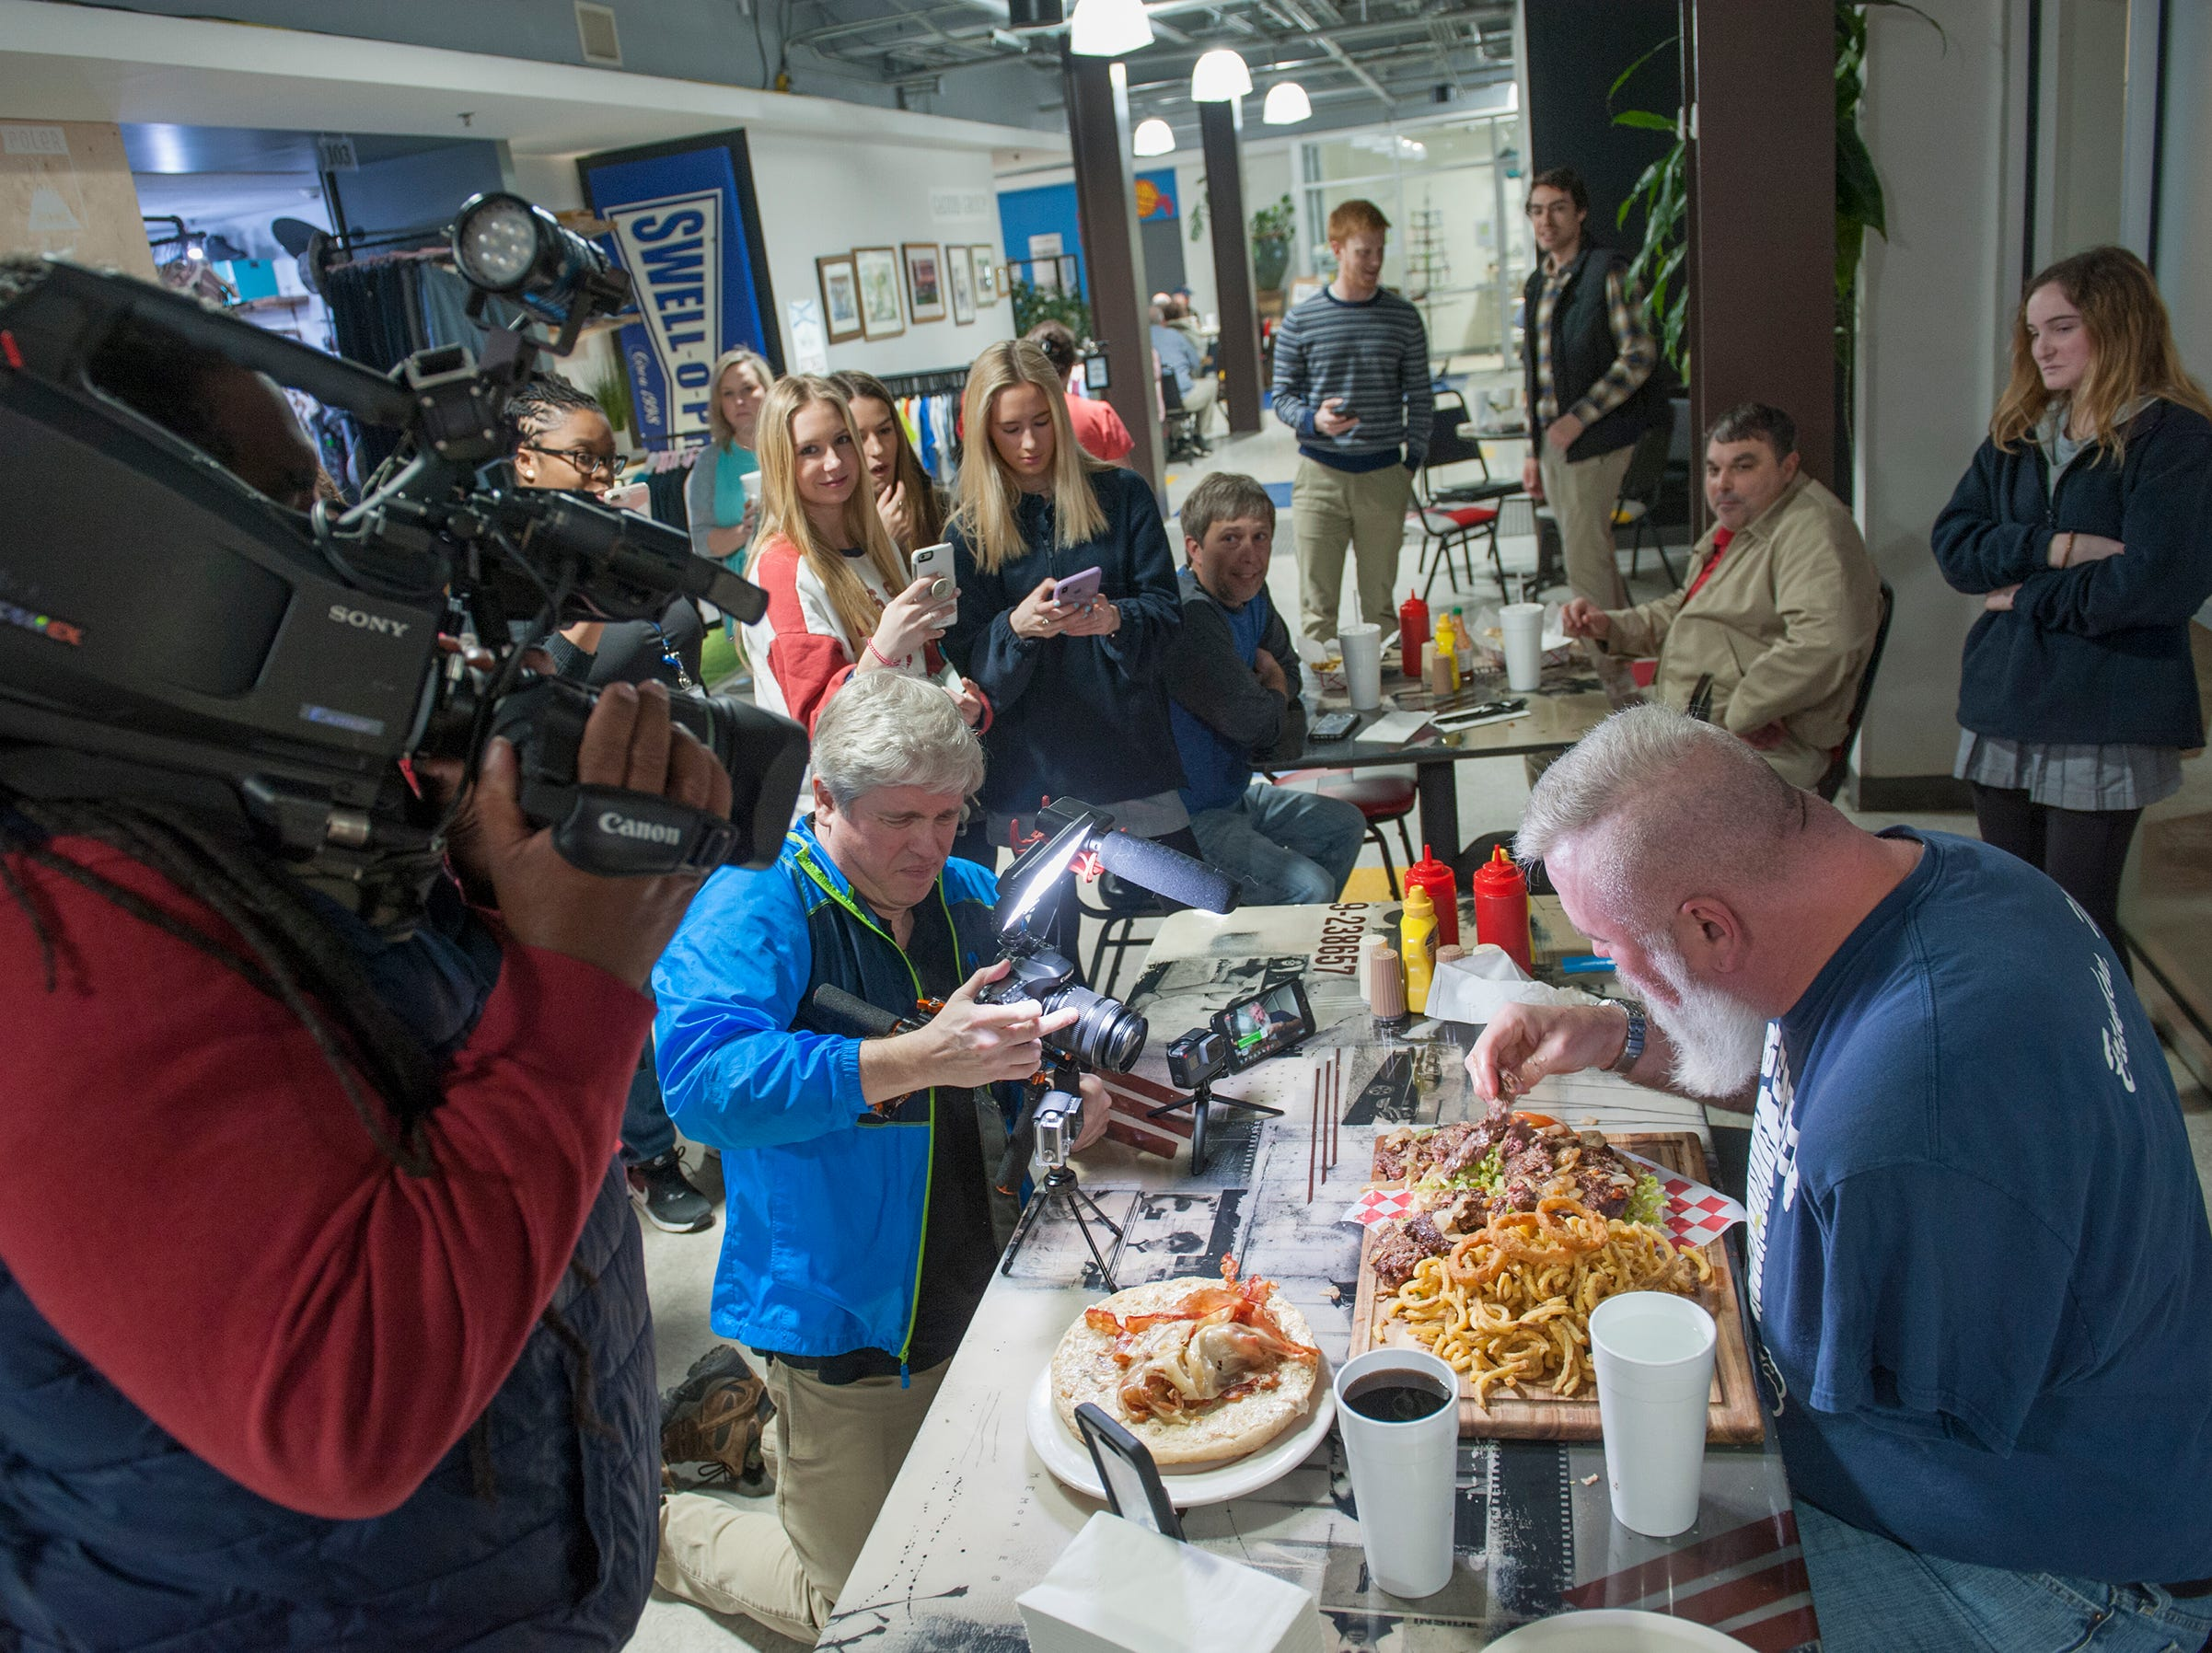 A crowd gathers to witness Mike Whities of Brandon, also known as Big Eater Mike, tackled a 6-pound, 8-ounce platter of burger and fries within 30 minutes during the Roosters' Stupid Burger Challenge Friday, Feb. 1, 2019 at the Fondren restaurant.